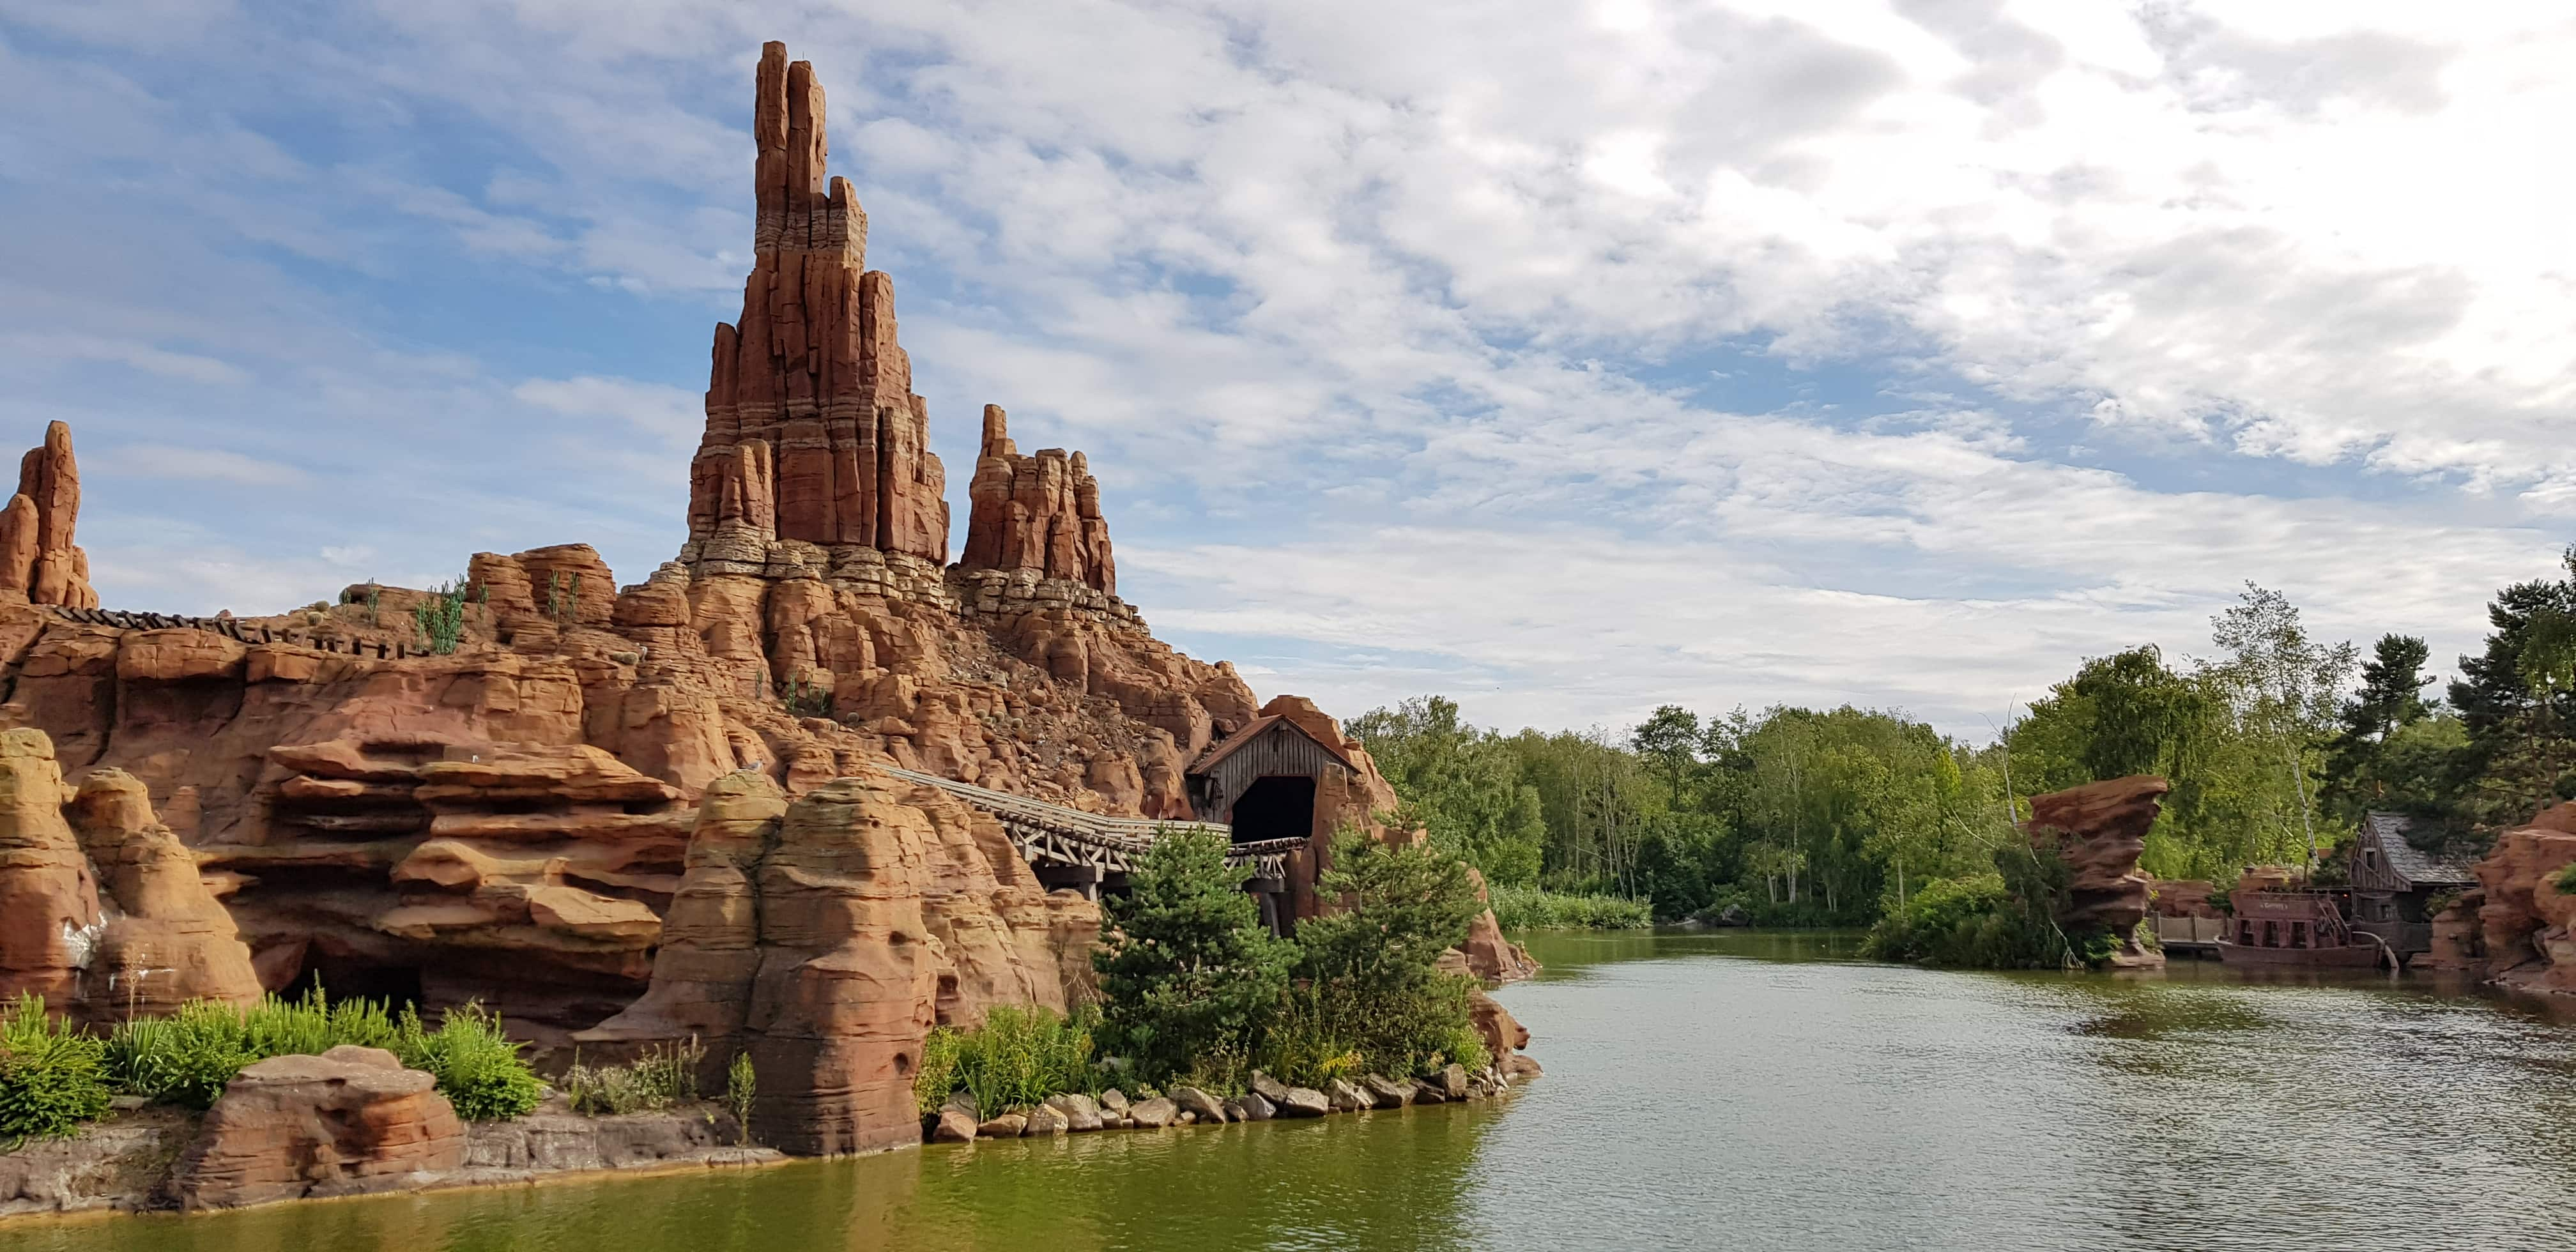 Big Thunder Mountain coaster ride Disneyland Paris